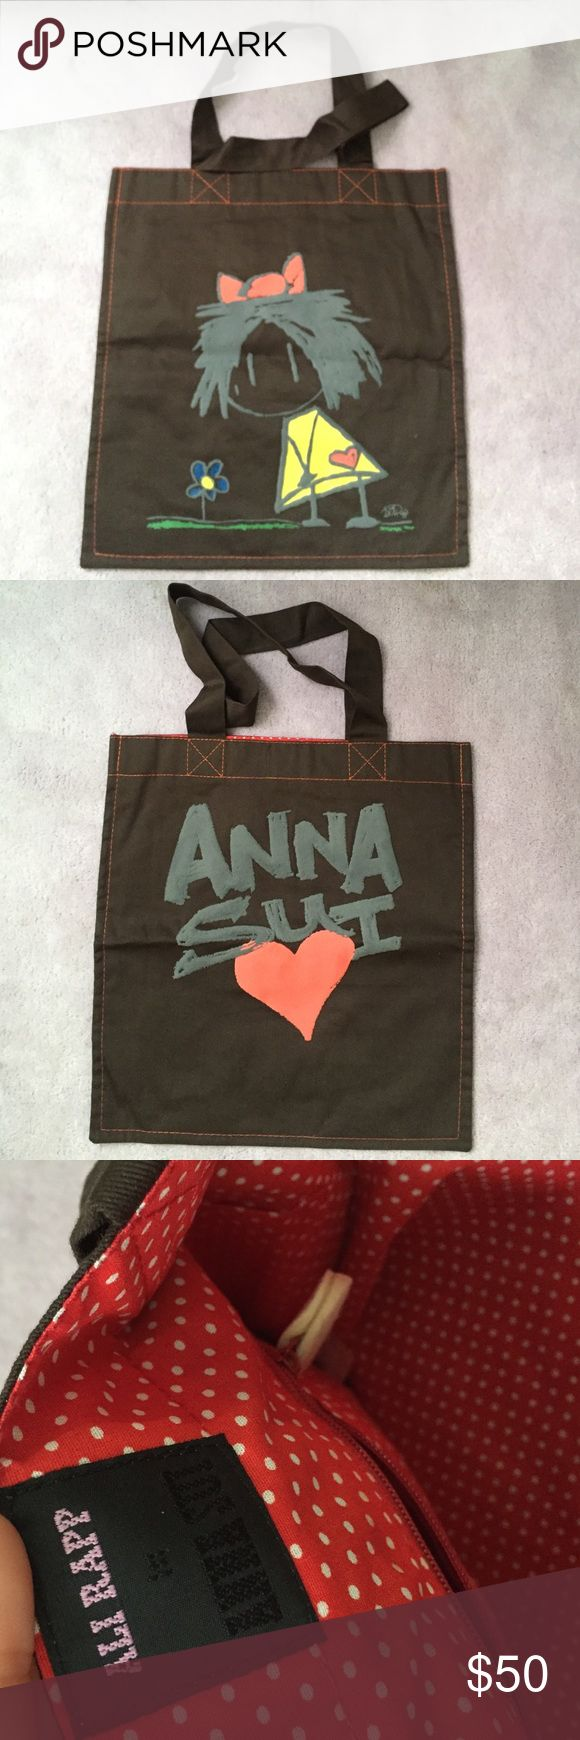 Anna Sui Canvas Tote Anna Sui Canvas FLAT Tote • made in Peru • 100% cotton • 100% Authentic • no closure • one zip pocket inside • no trades • used once, in excellent condition Anna Sui Bags Totes